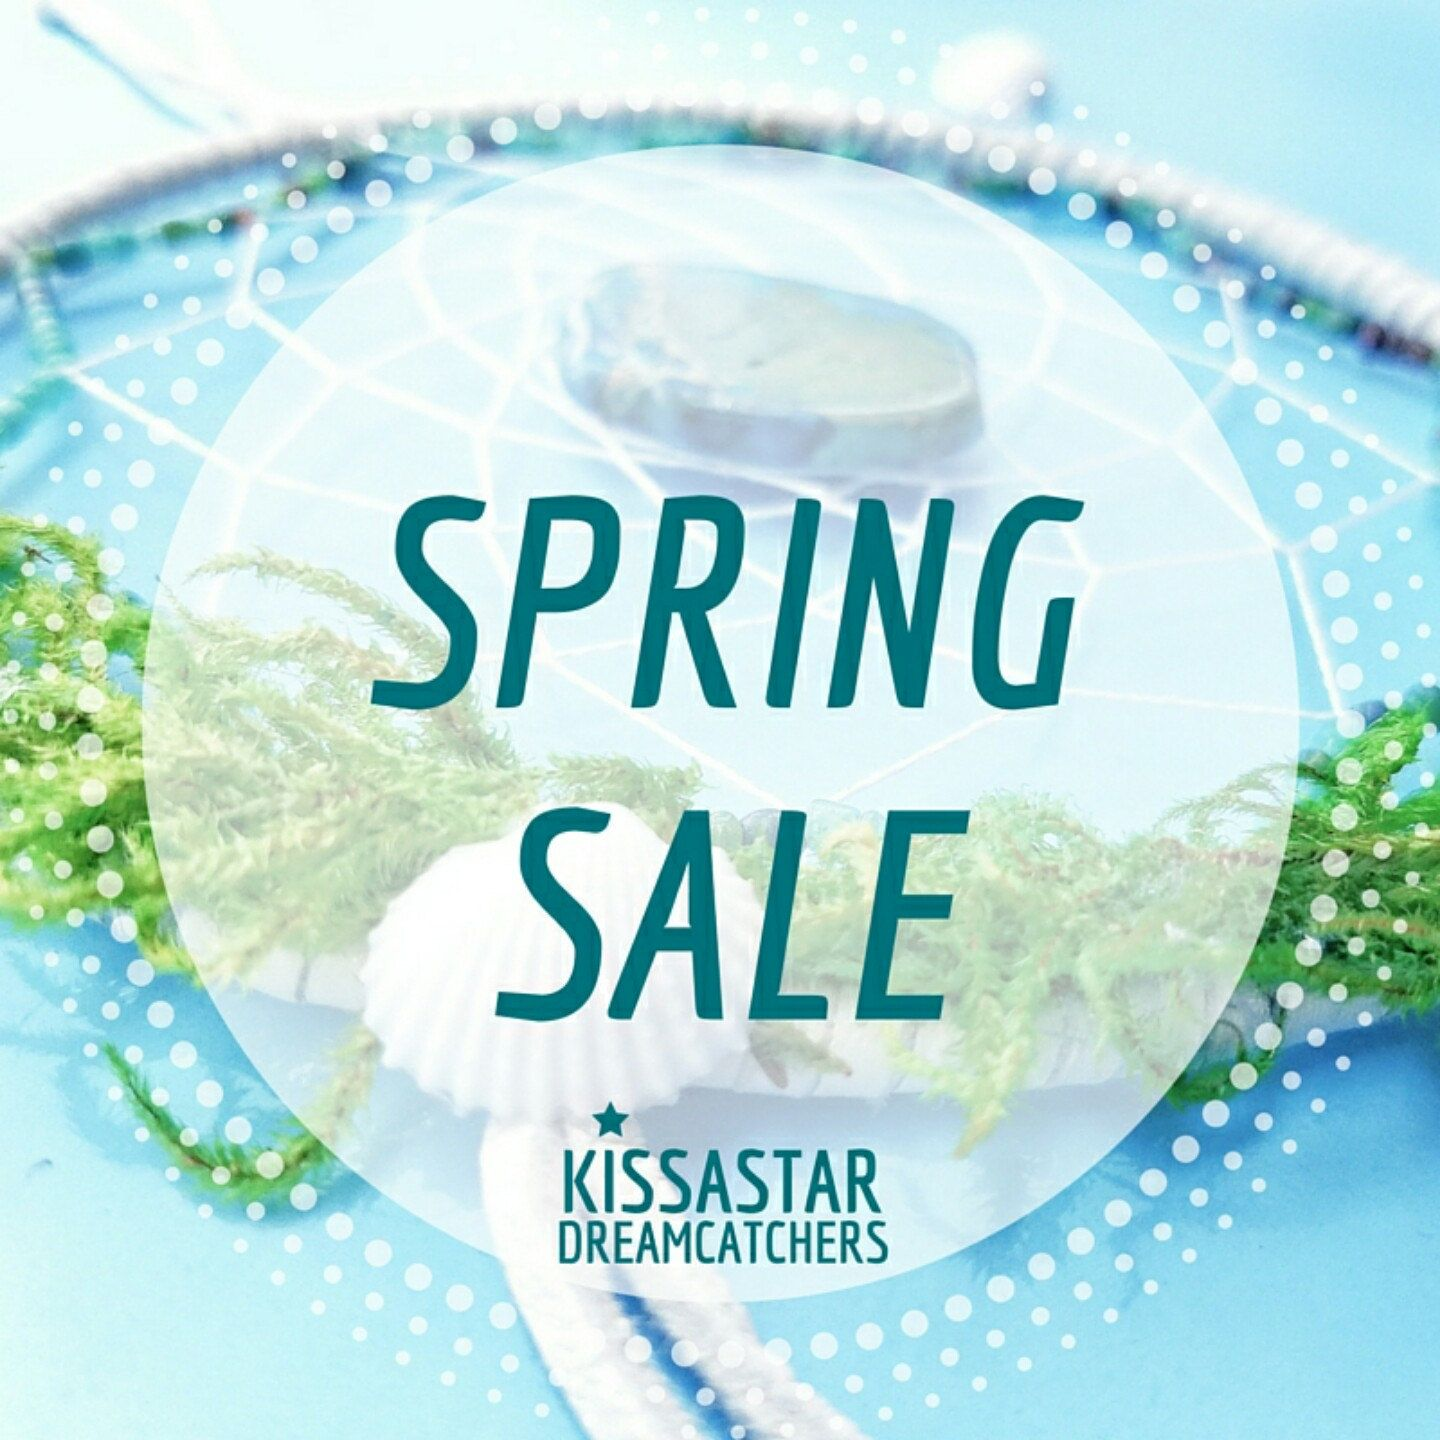 Just A Few Days Left To Use Coupon Code SPRINGSALE65 For